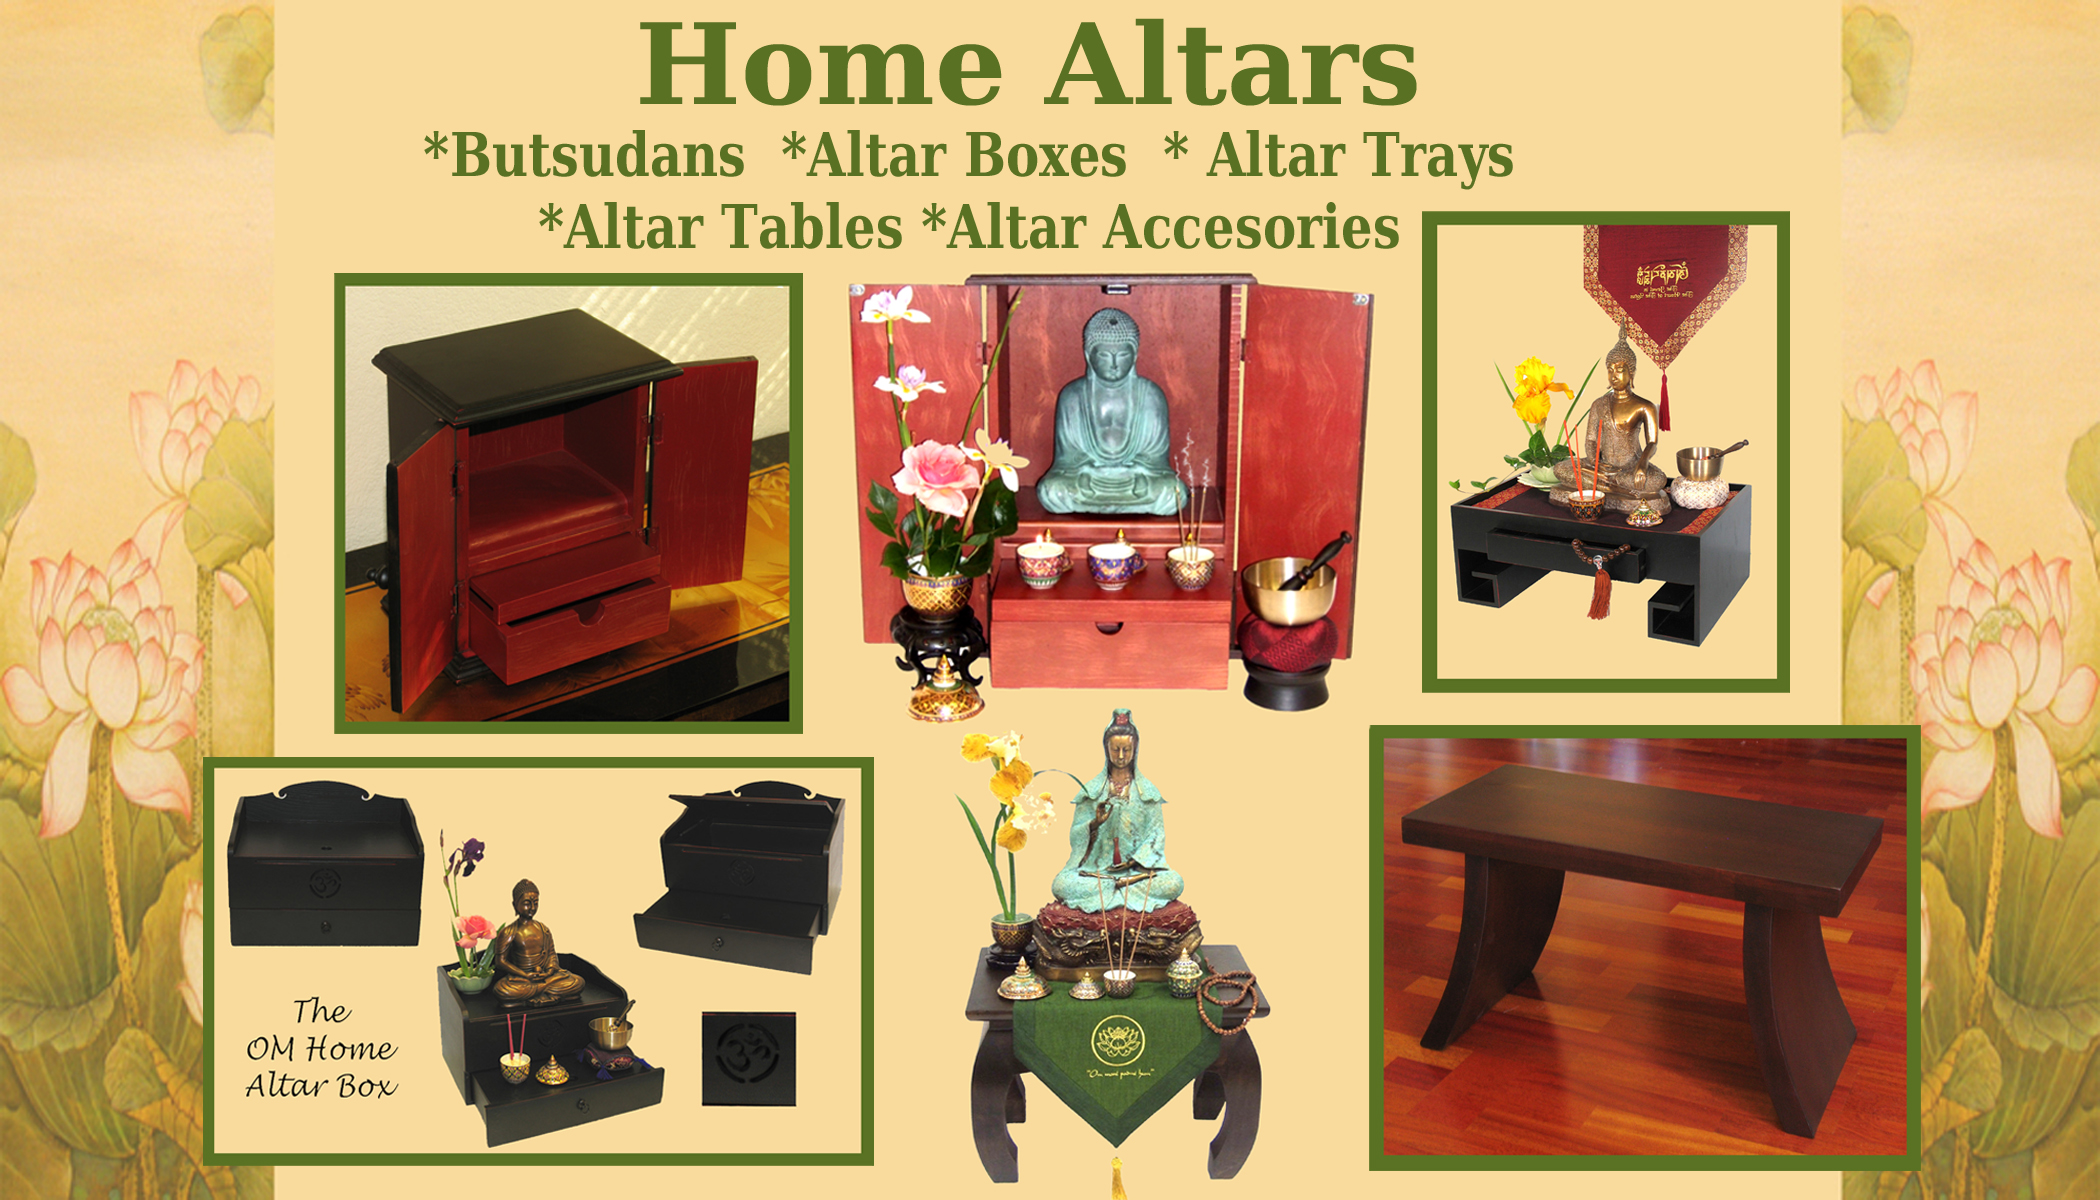 Images of altars at home